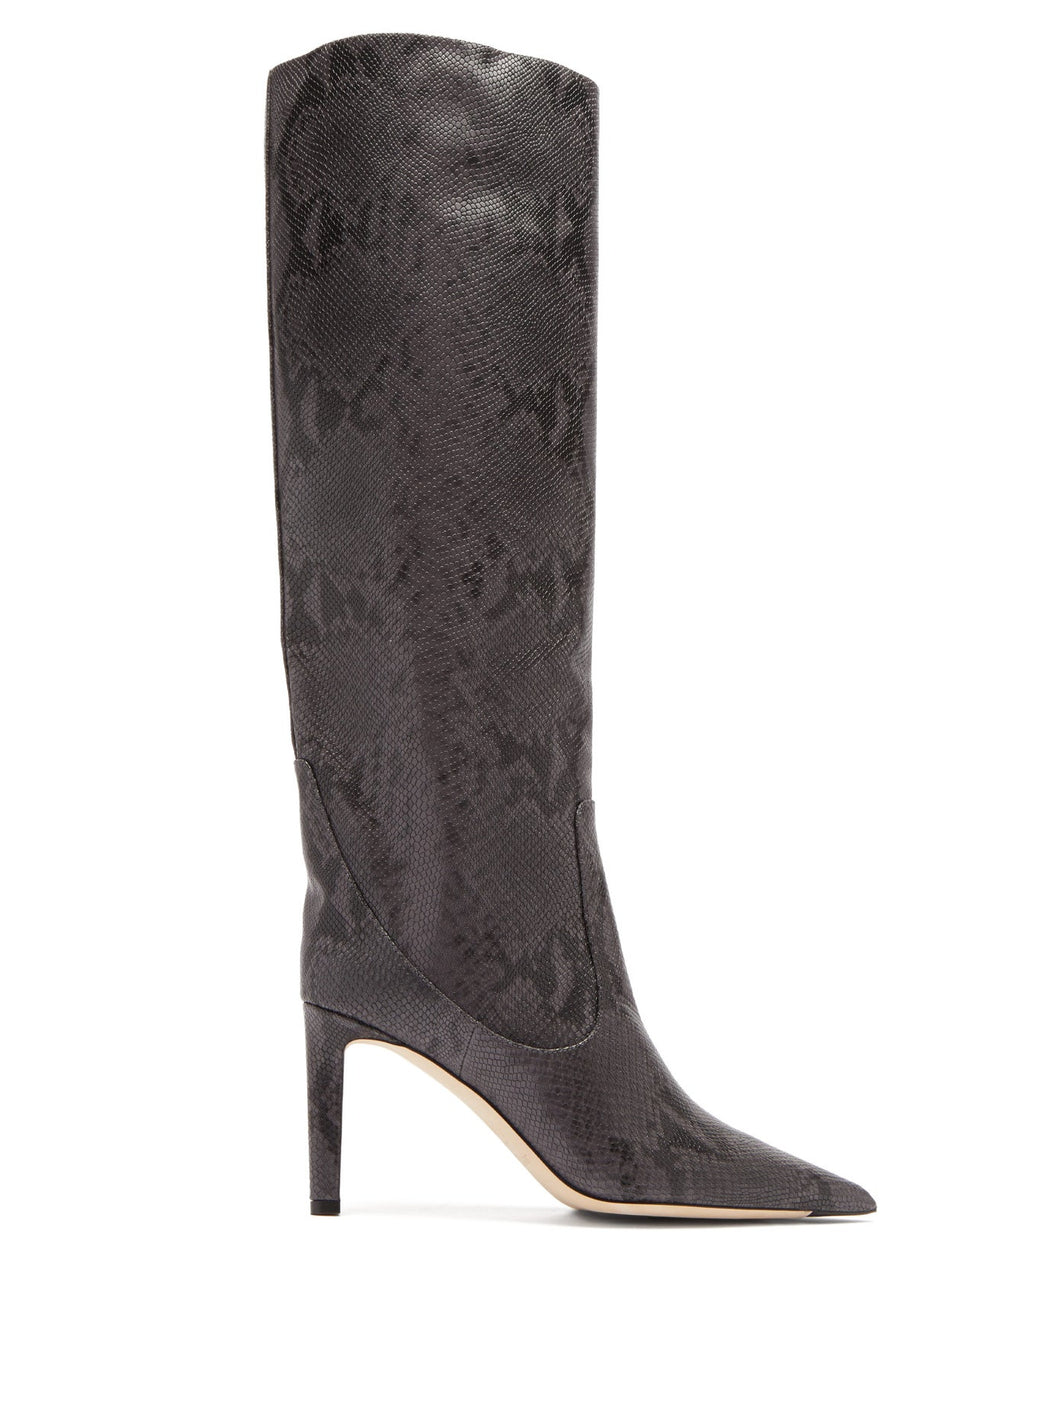 Mavis 85 python-effect leather knee-high boots